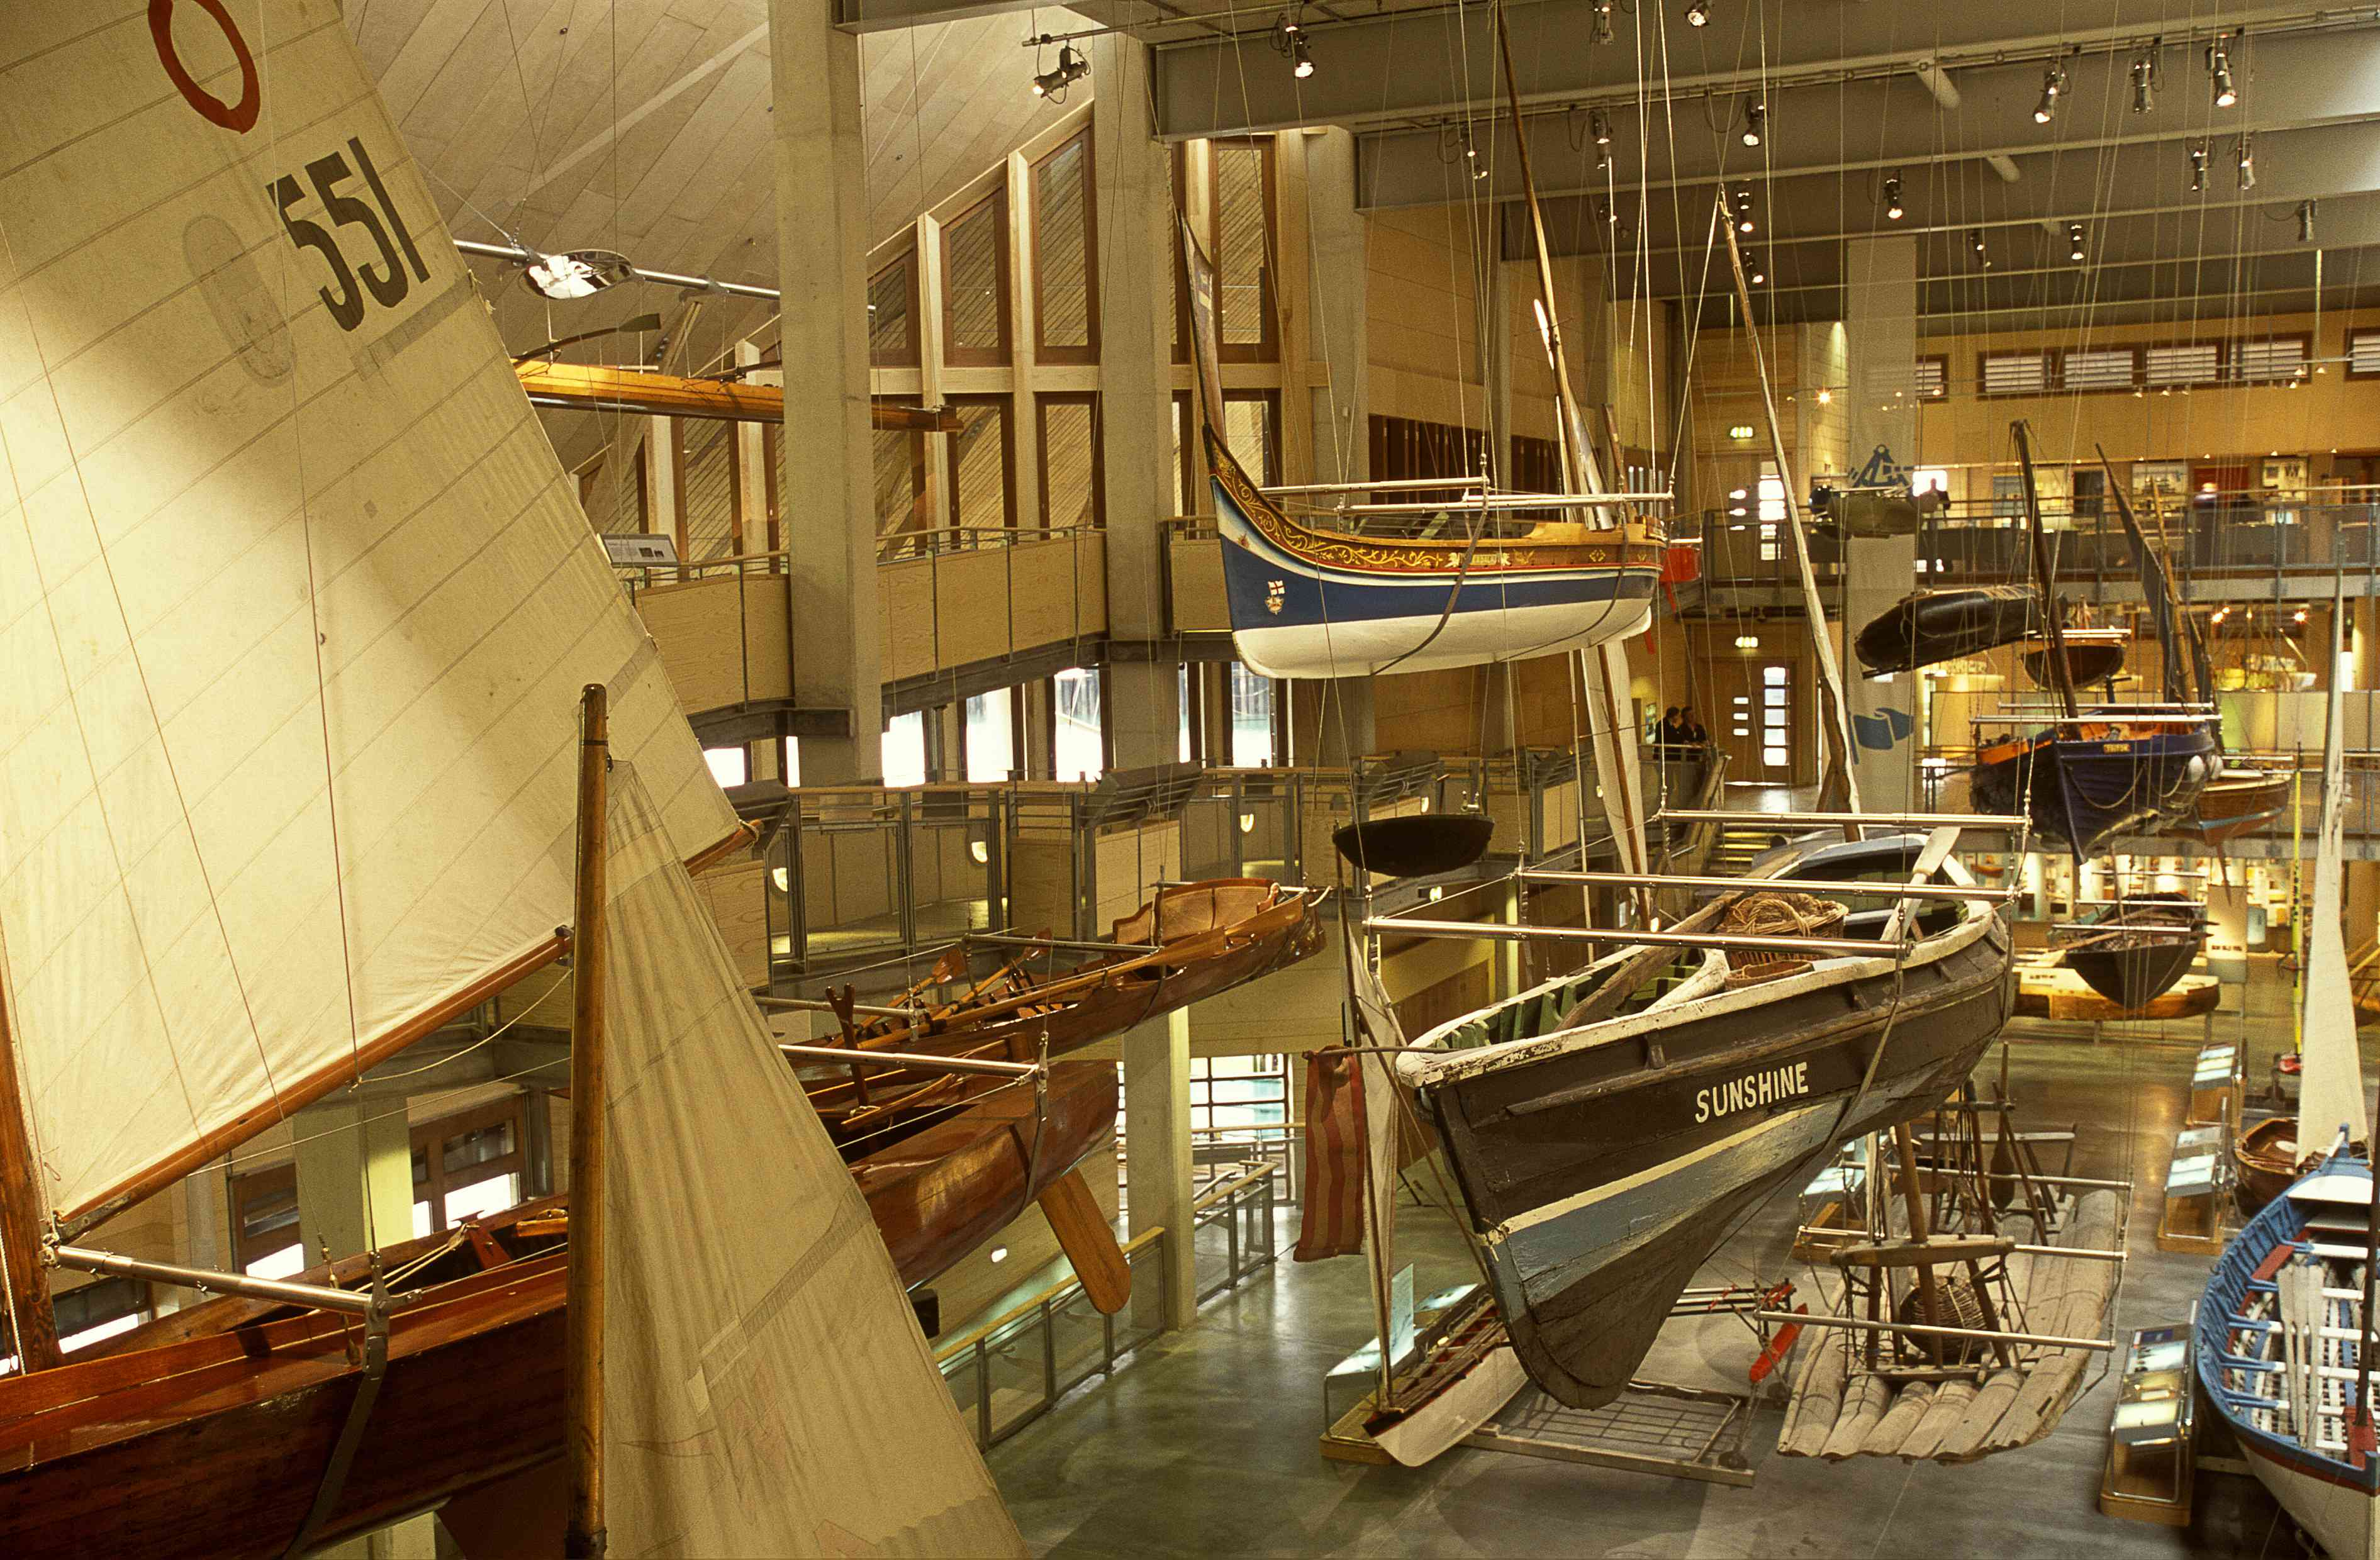 Collection of small boats on display inside the main exhibition hall at The National Maritime Museum Cornwall